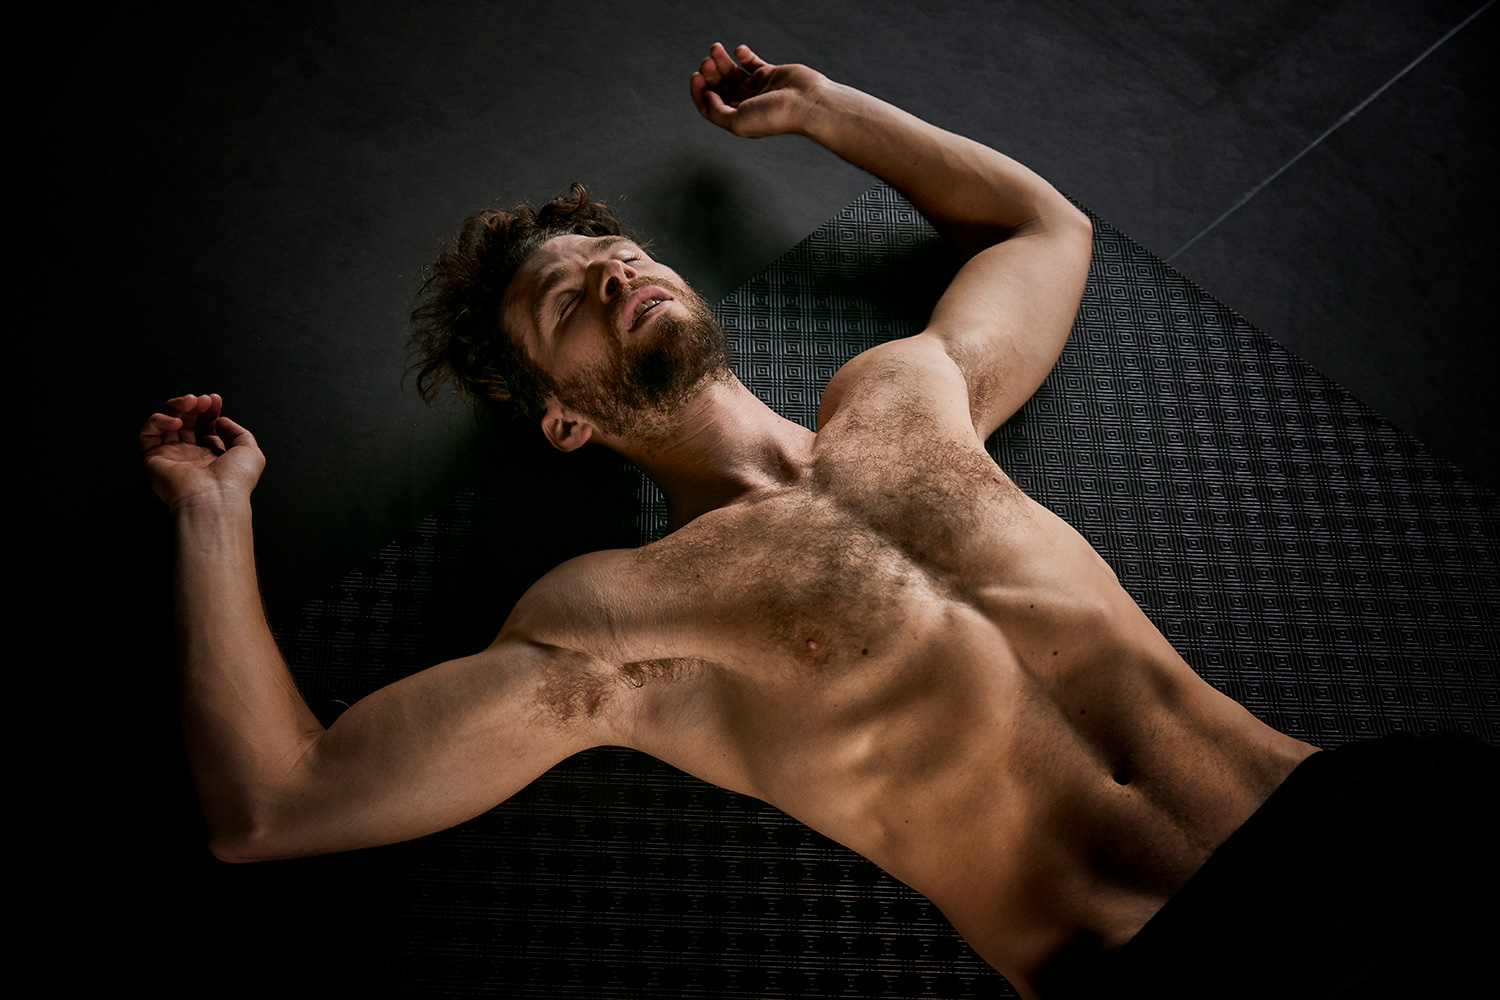 Exhausted man lying on the ground after a fitness session in a gym